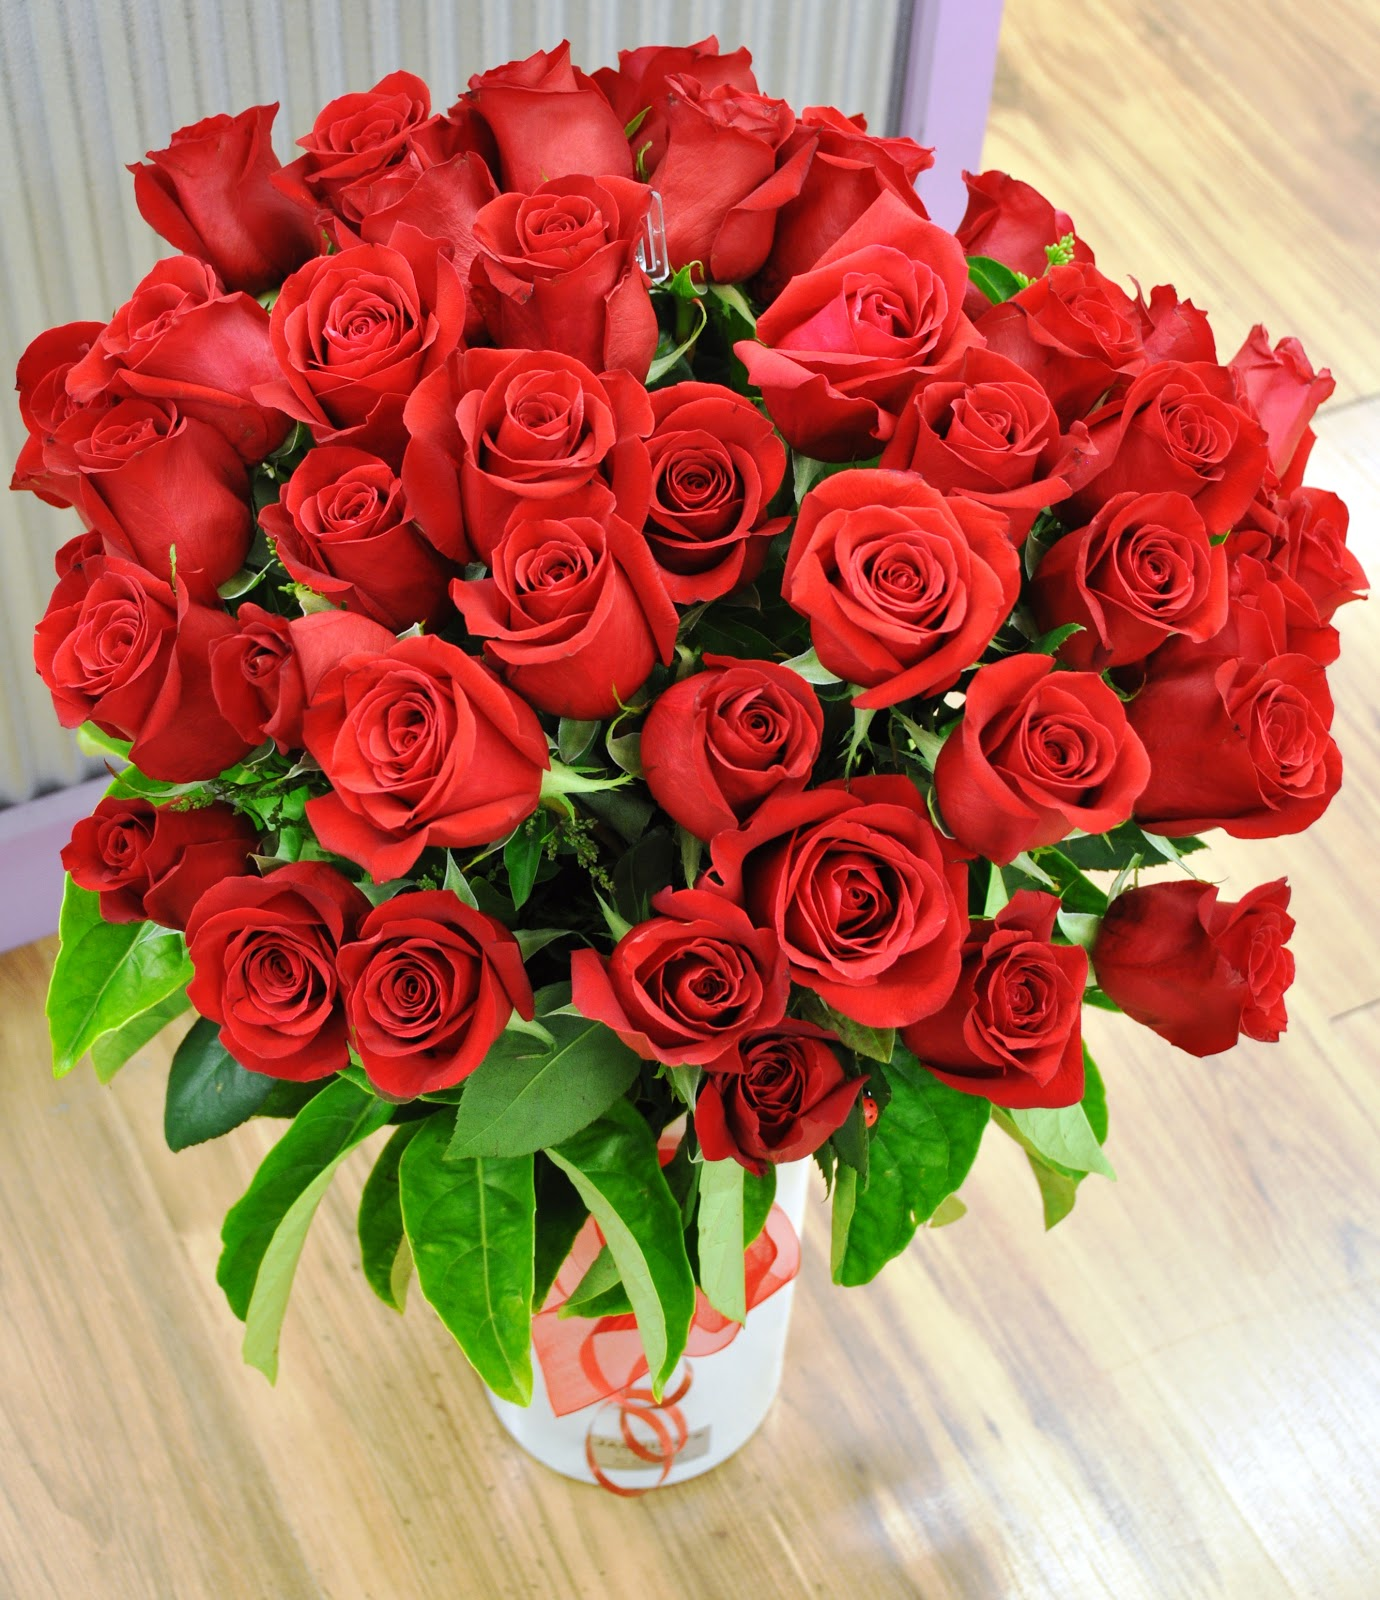 Superiority besides low priced flower delivery order flowers superiority besides low priced flower delivery izmirmasajfo